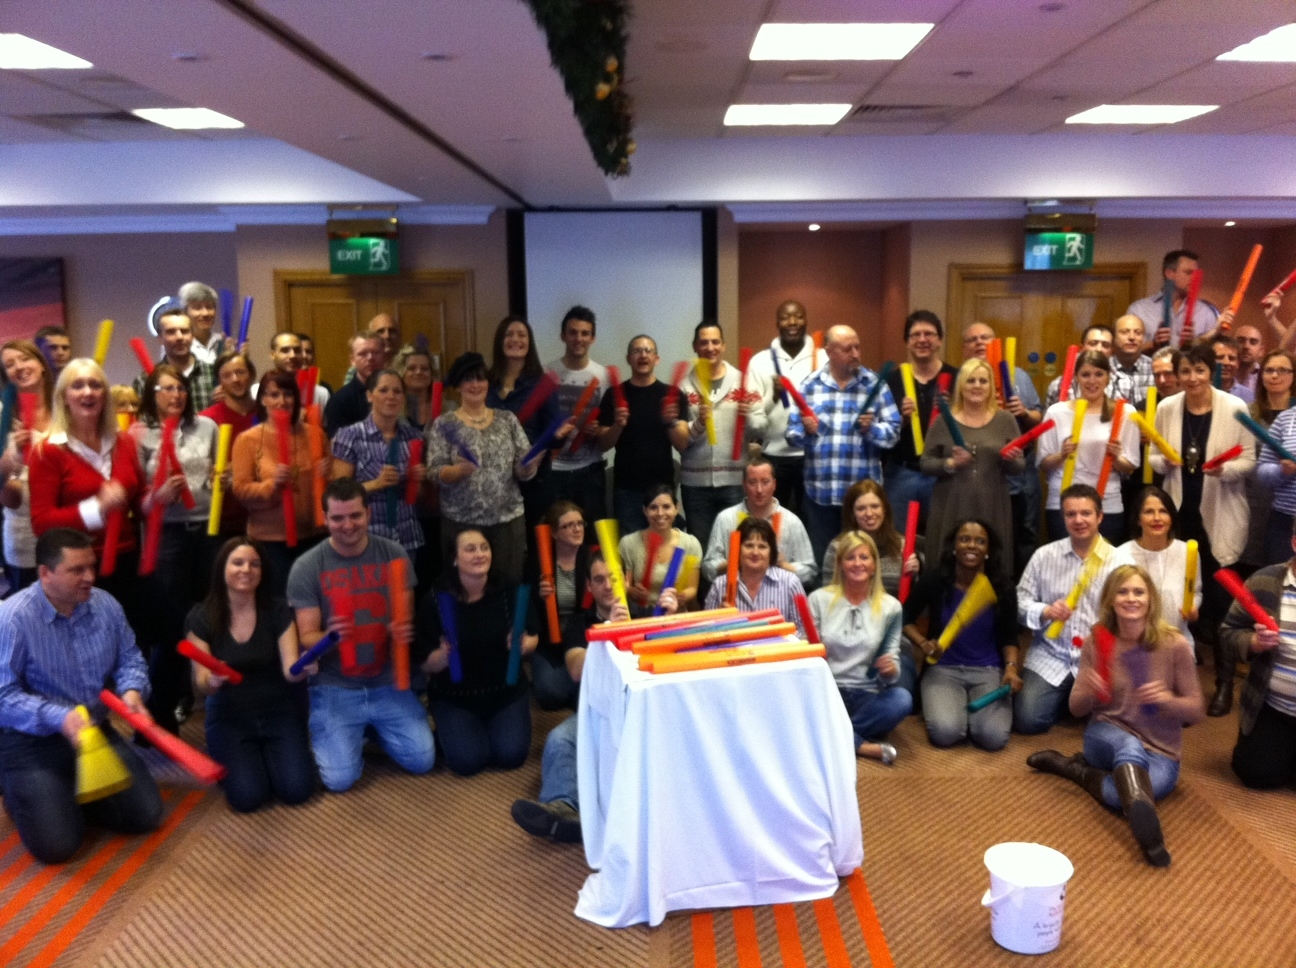 Corporate drumming ice breaker events in Oxfordshire and Liecestershire